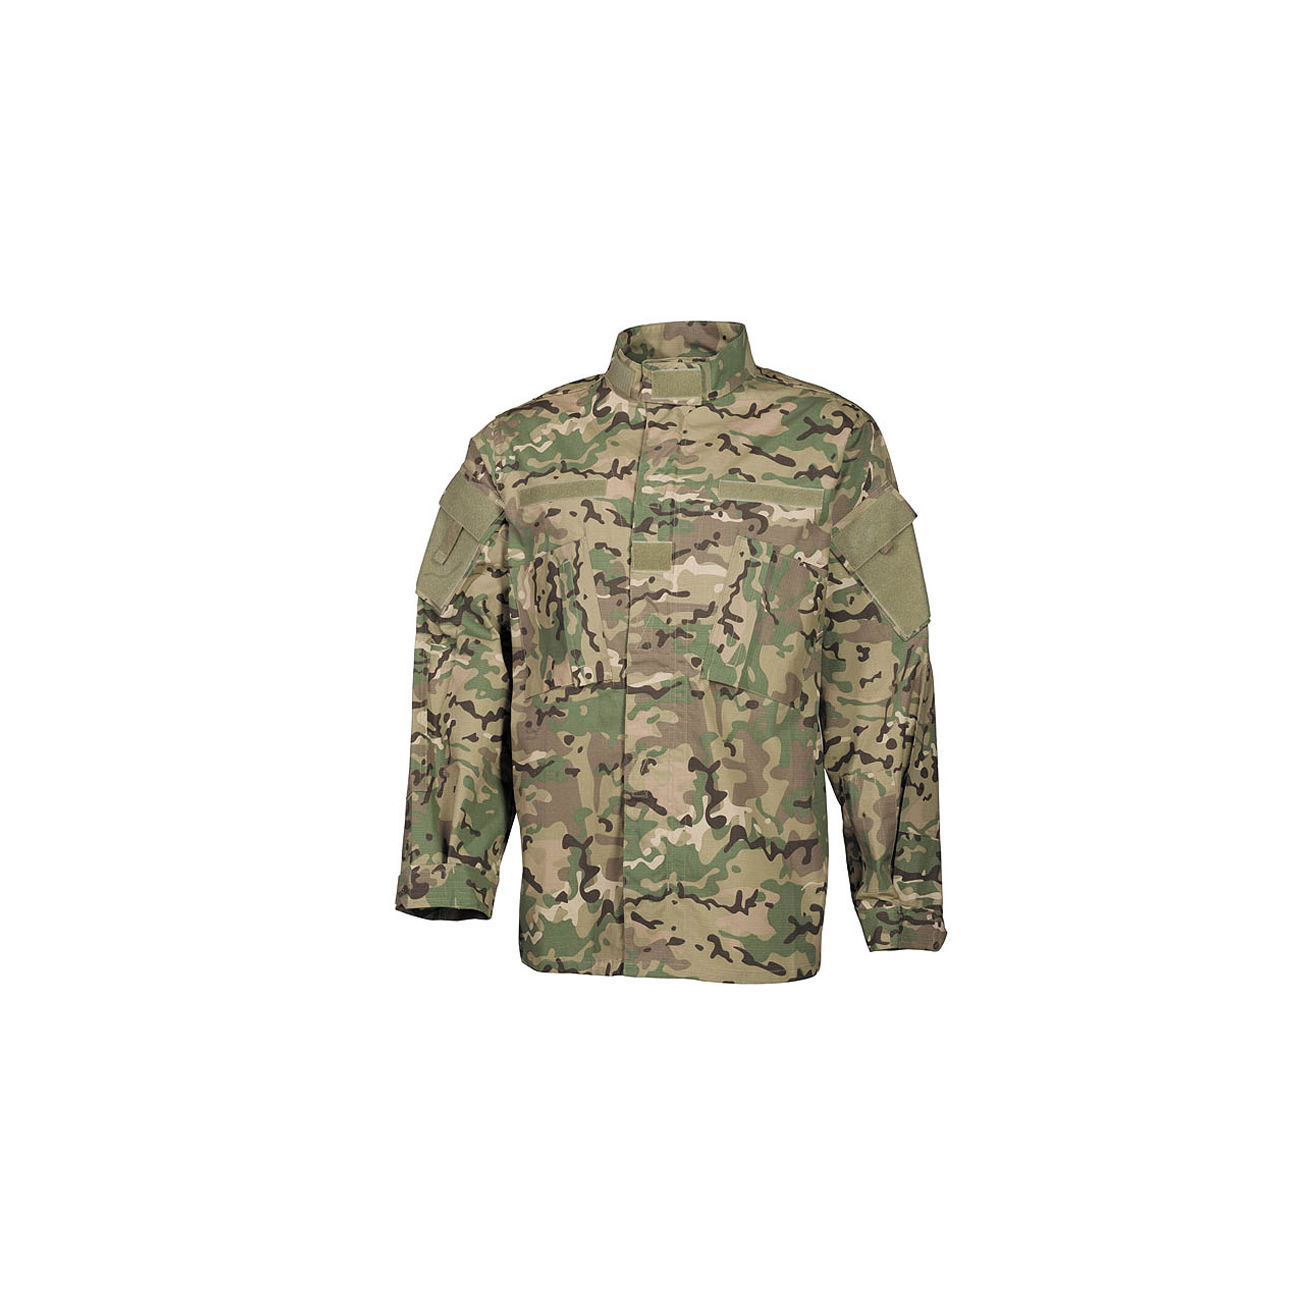 MFH Feldjacke US ACU Rip Stop operation camo 0